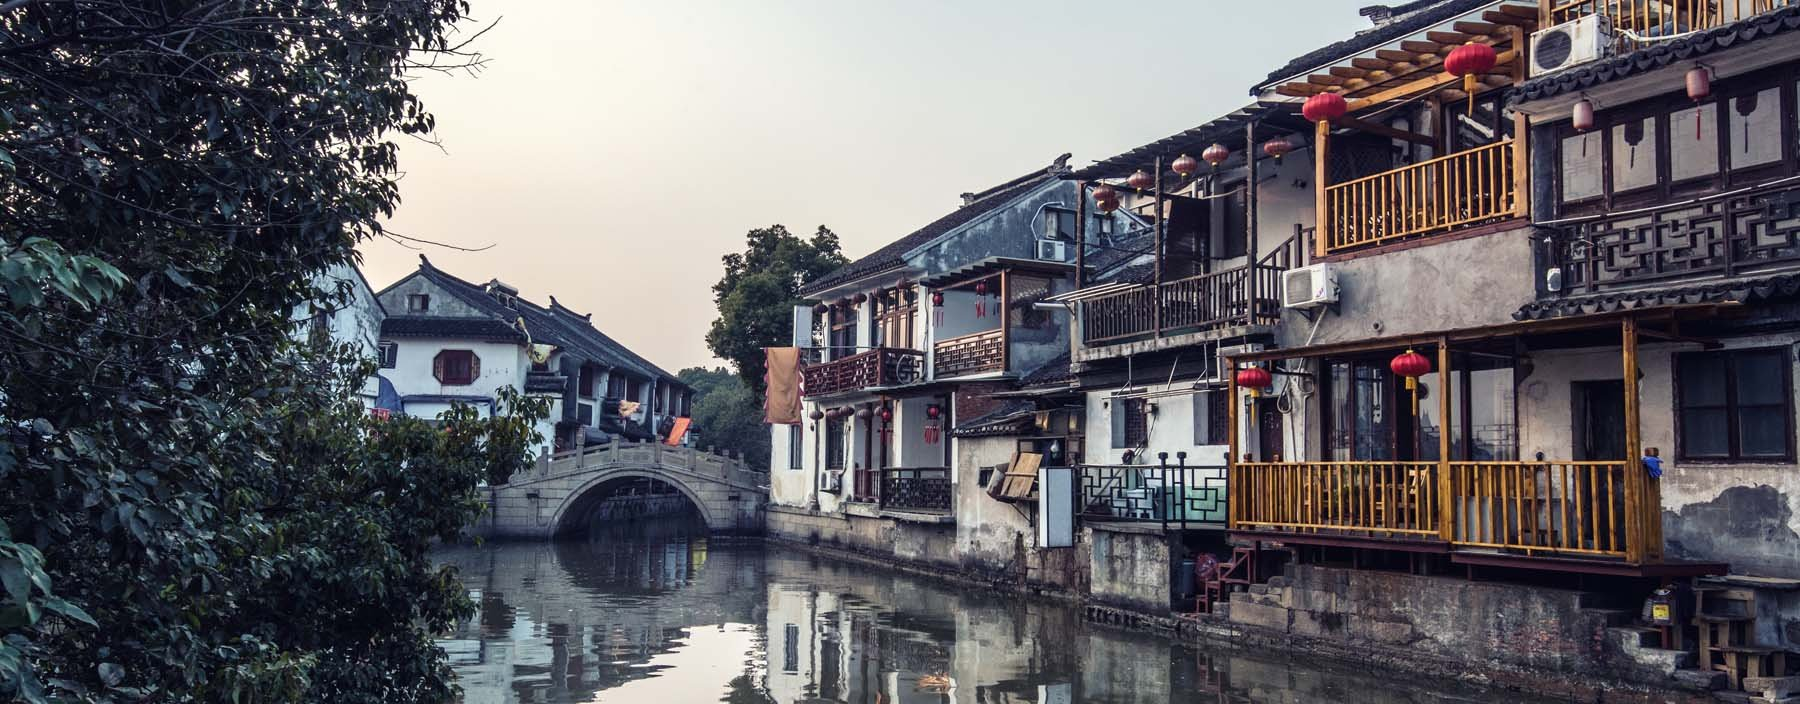 cn, suzhou, old-town of tongli -suzhou  (1).jpg